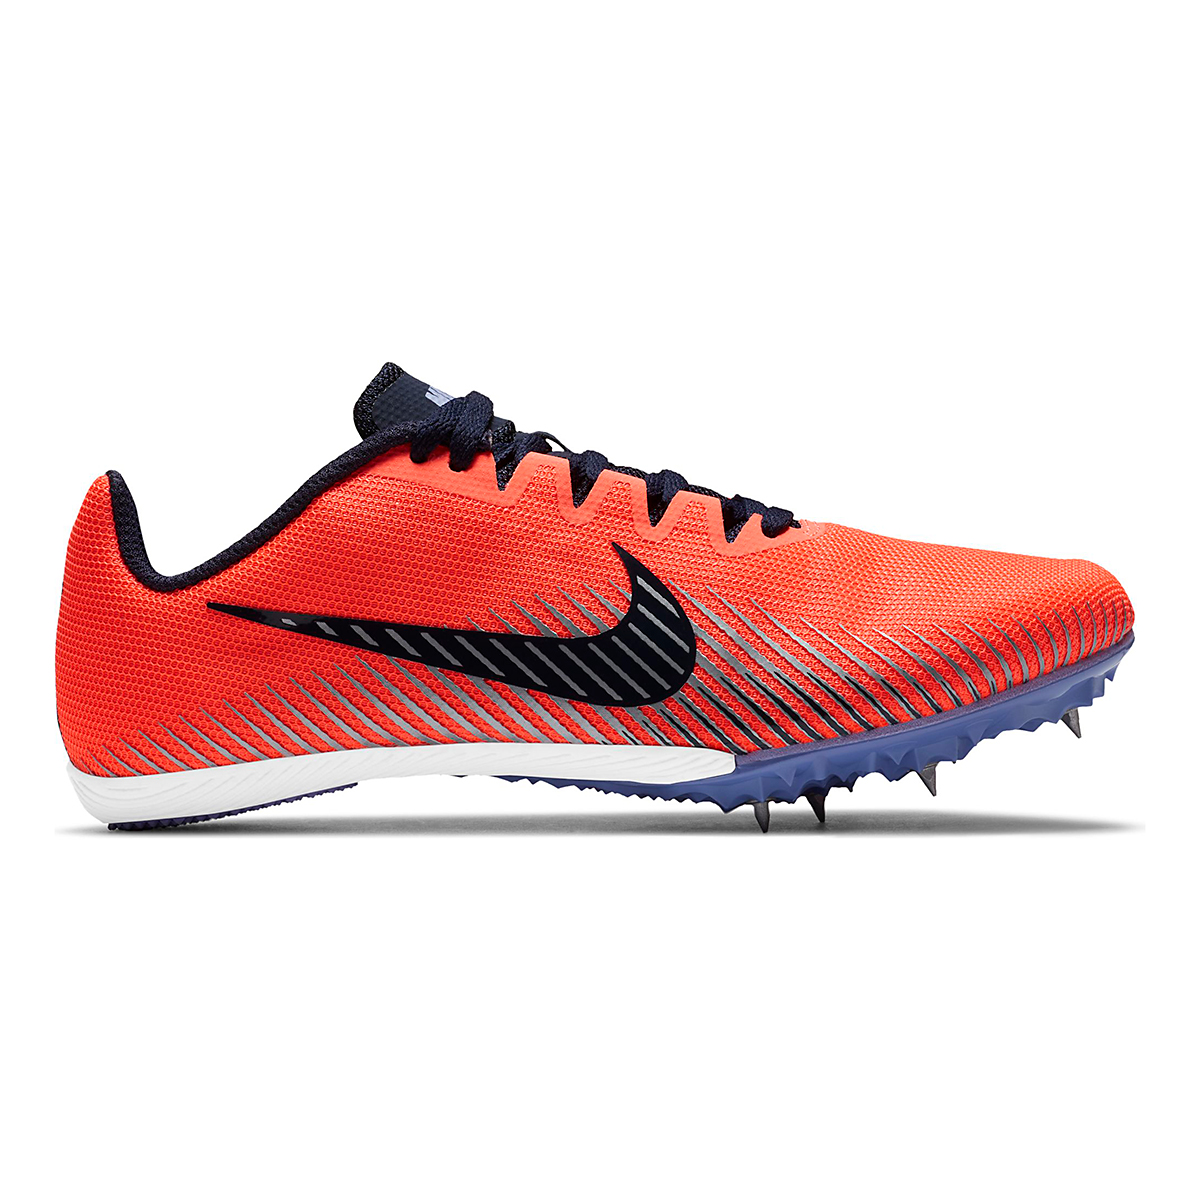 Women's Nike Zoom Rival M 9 Track Spikes - Color: Bright Mango/Blackend Blue - Size: 4 - Width: Regular, Bright Mango/Blackend Blue, large, image 1